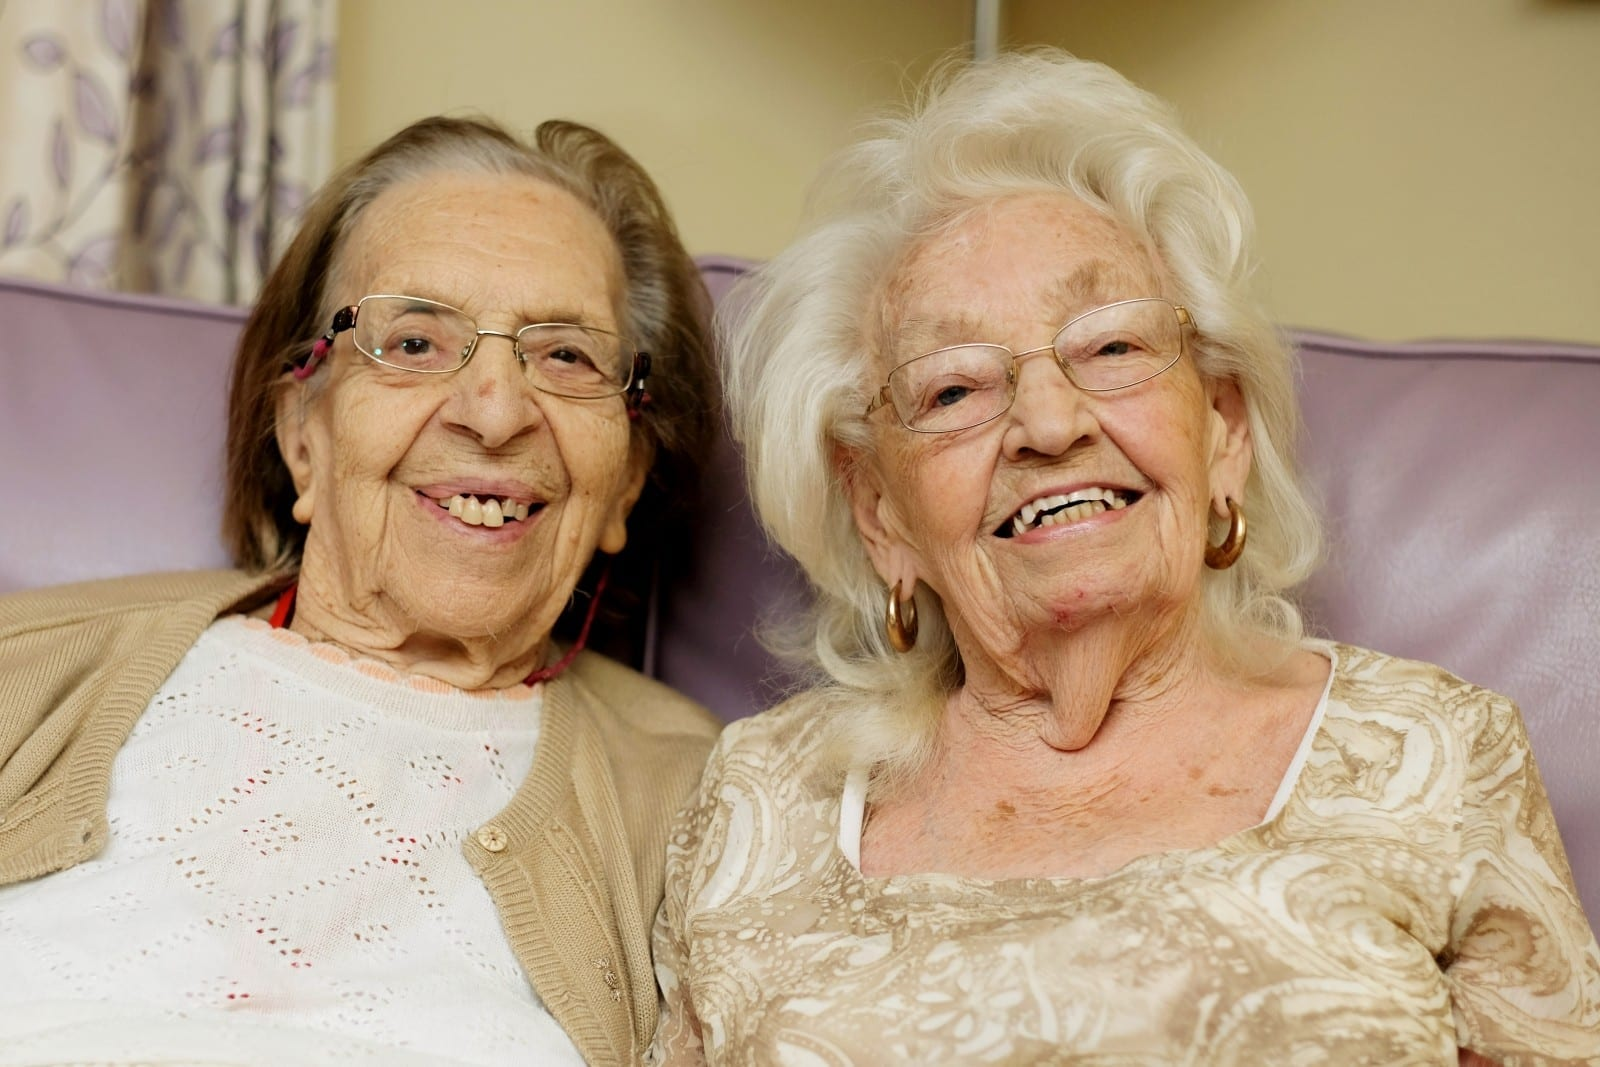 'We're Like Giggling School Girls' - Best Friends Who Have Been Inseparable For Almost 80 Years Move Into The Same Care Home